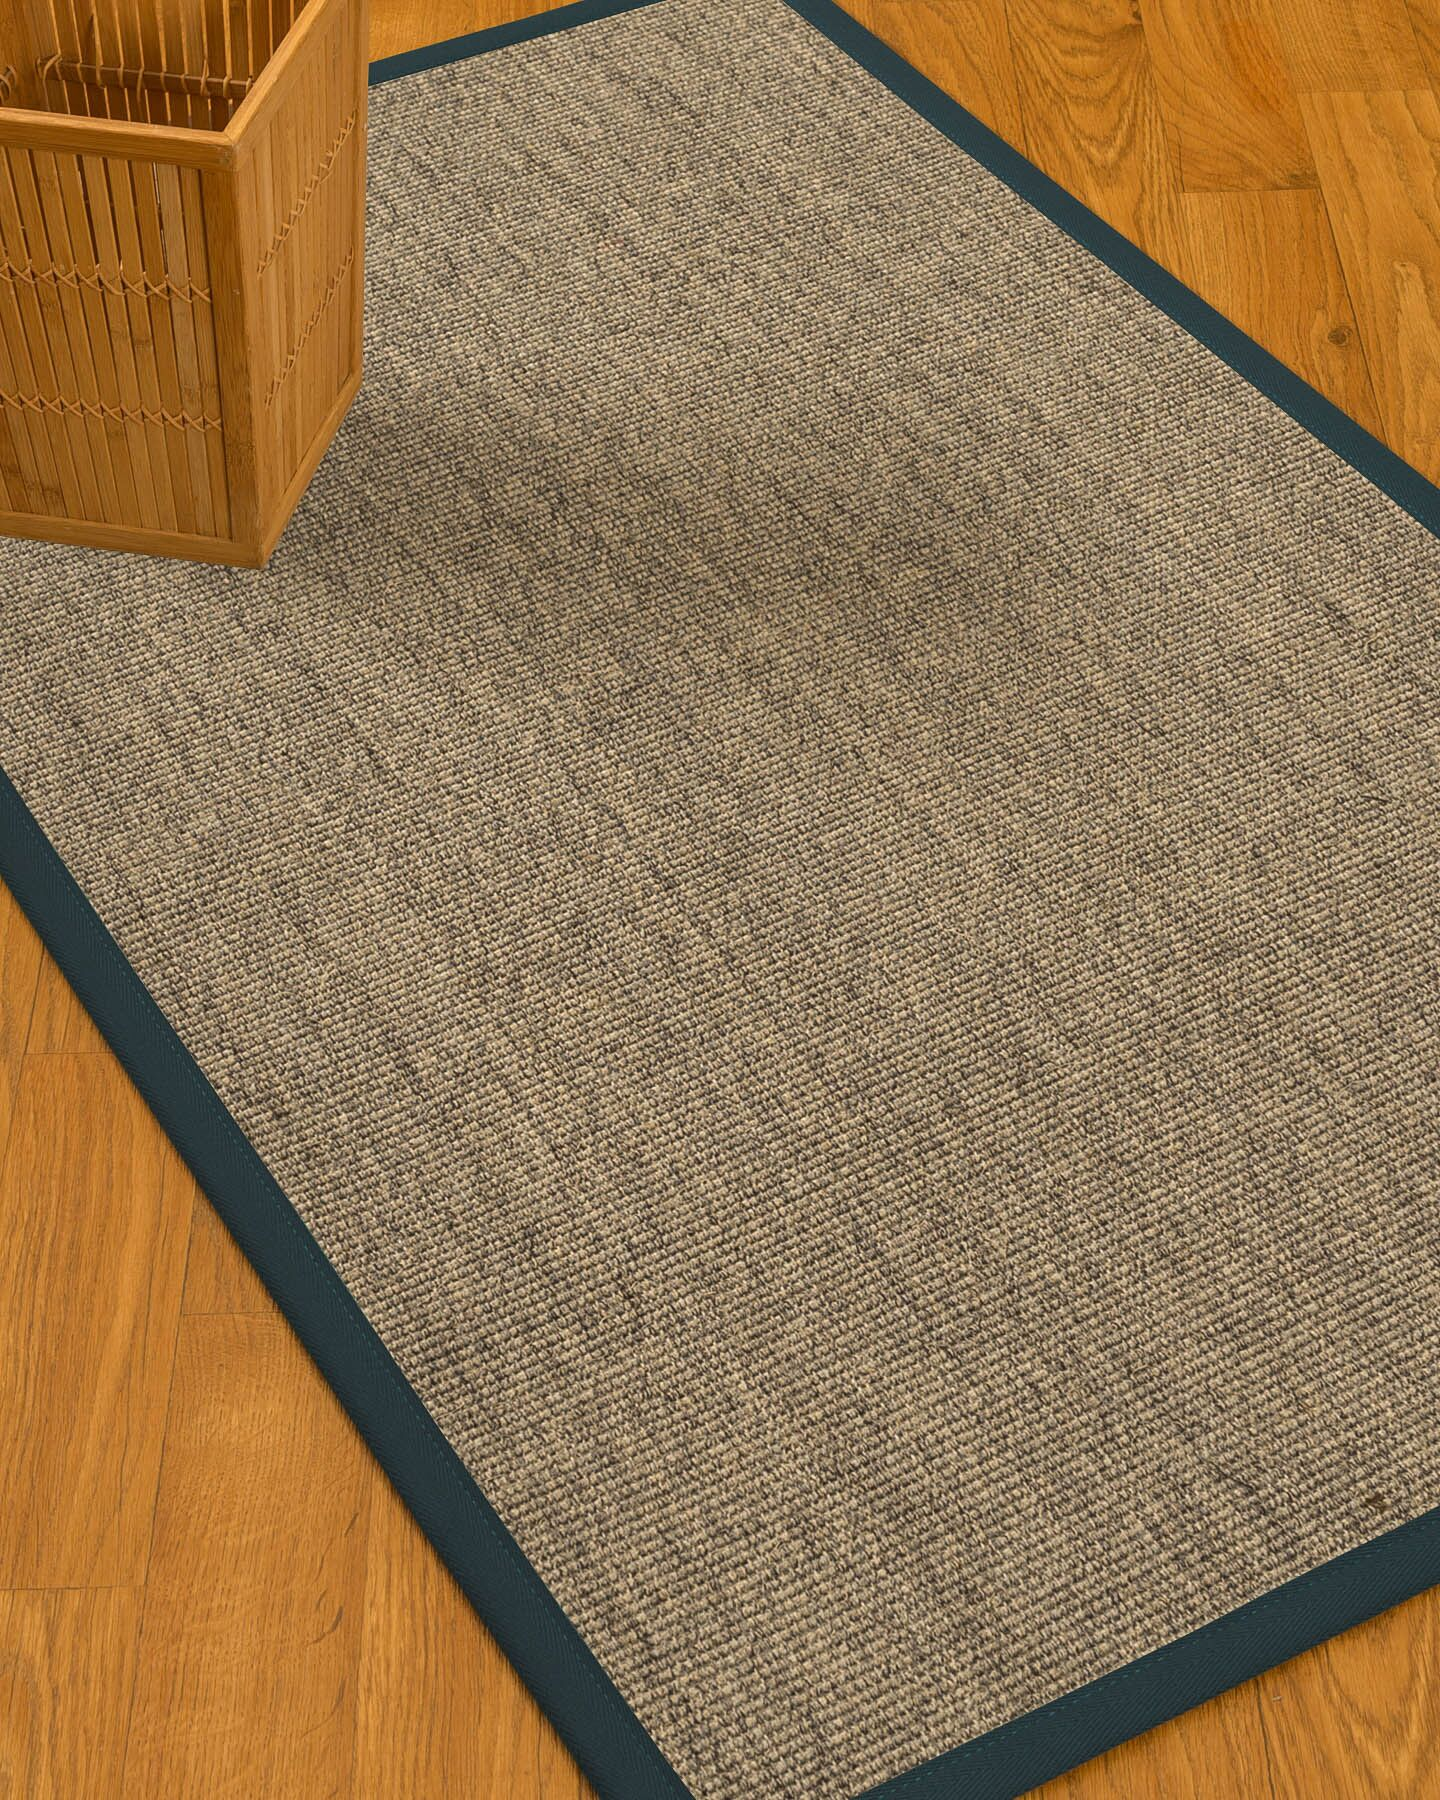 Mahan Border Hand-Woven Beige/Marine Area Rug Rug Size: Rectangle 12' x 15', Rug Pad Included: Yes